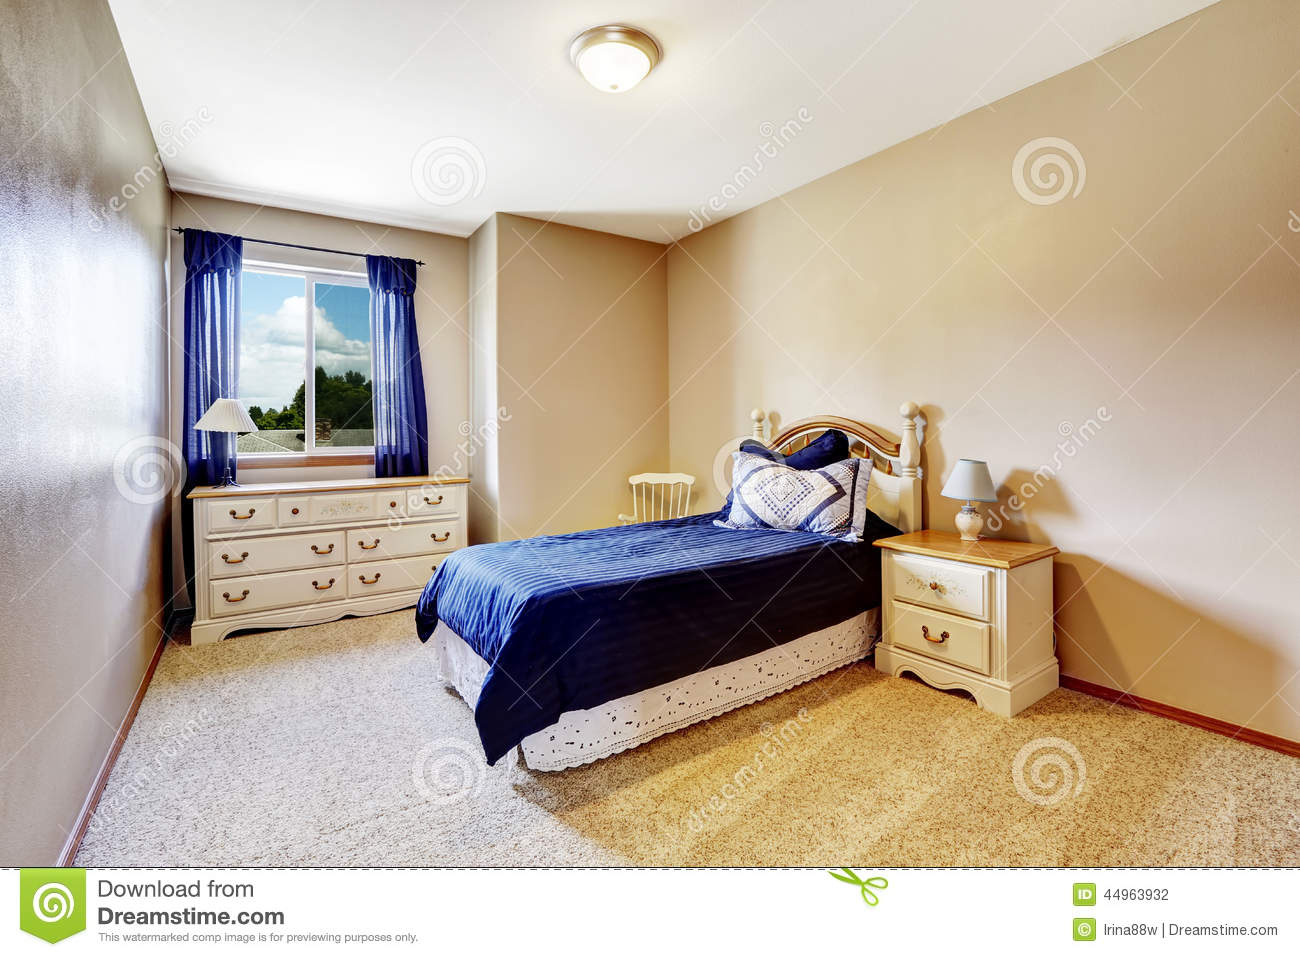 Bedroom interior with navy bedding and curtains stock for Soft carpet for bedrooms